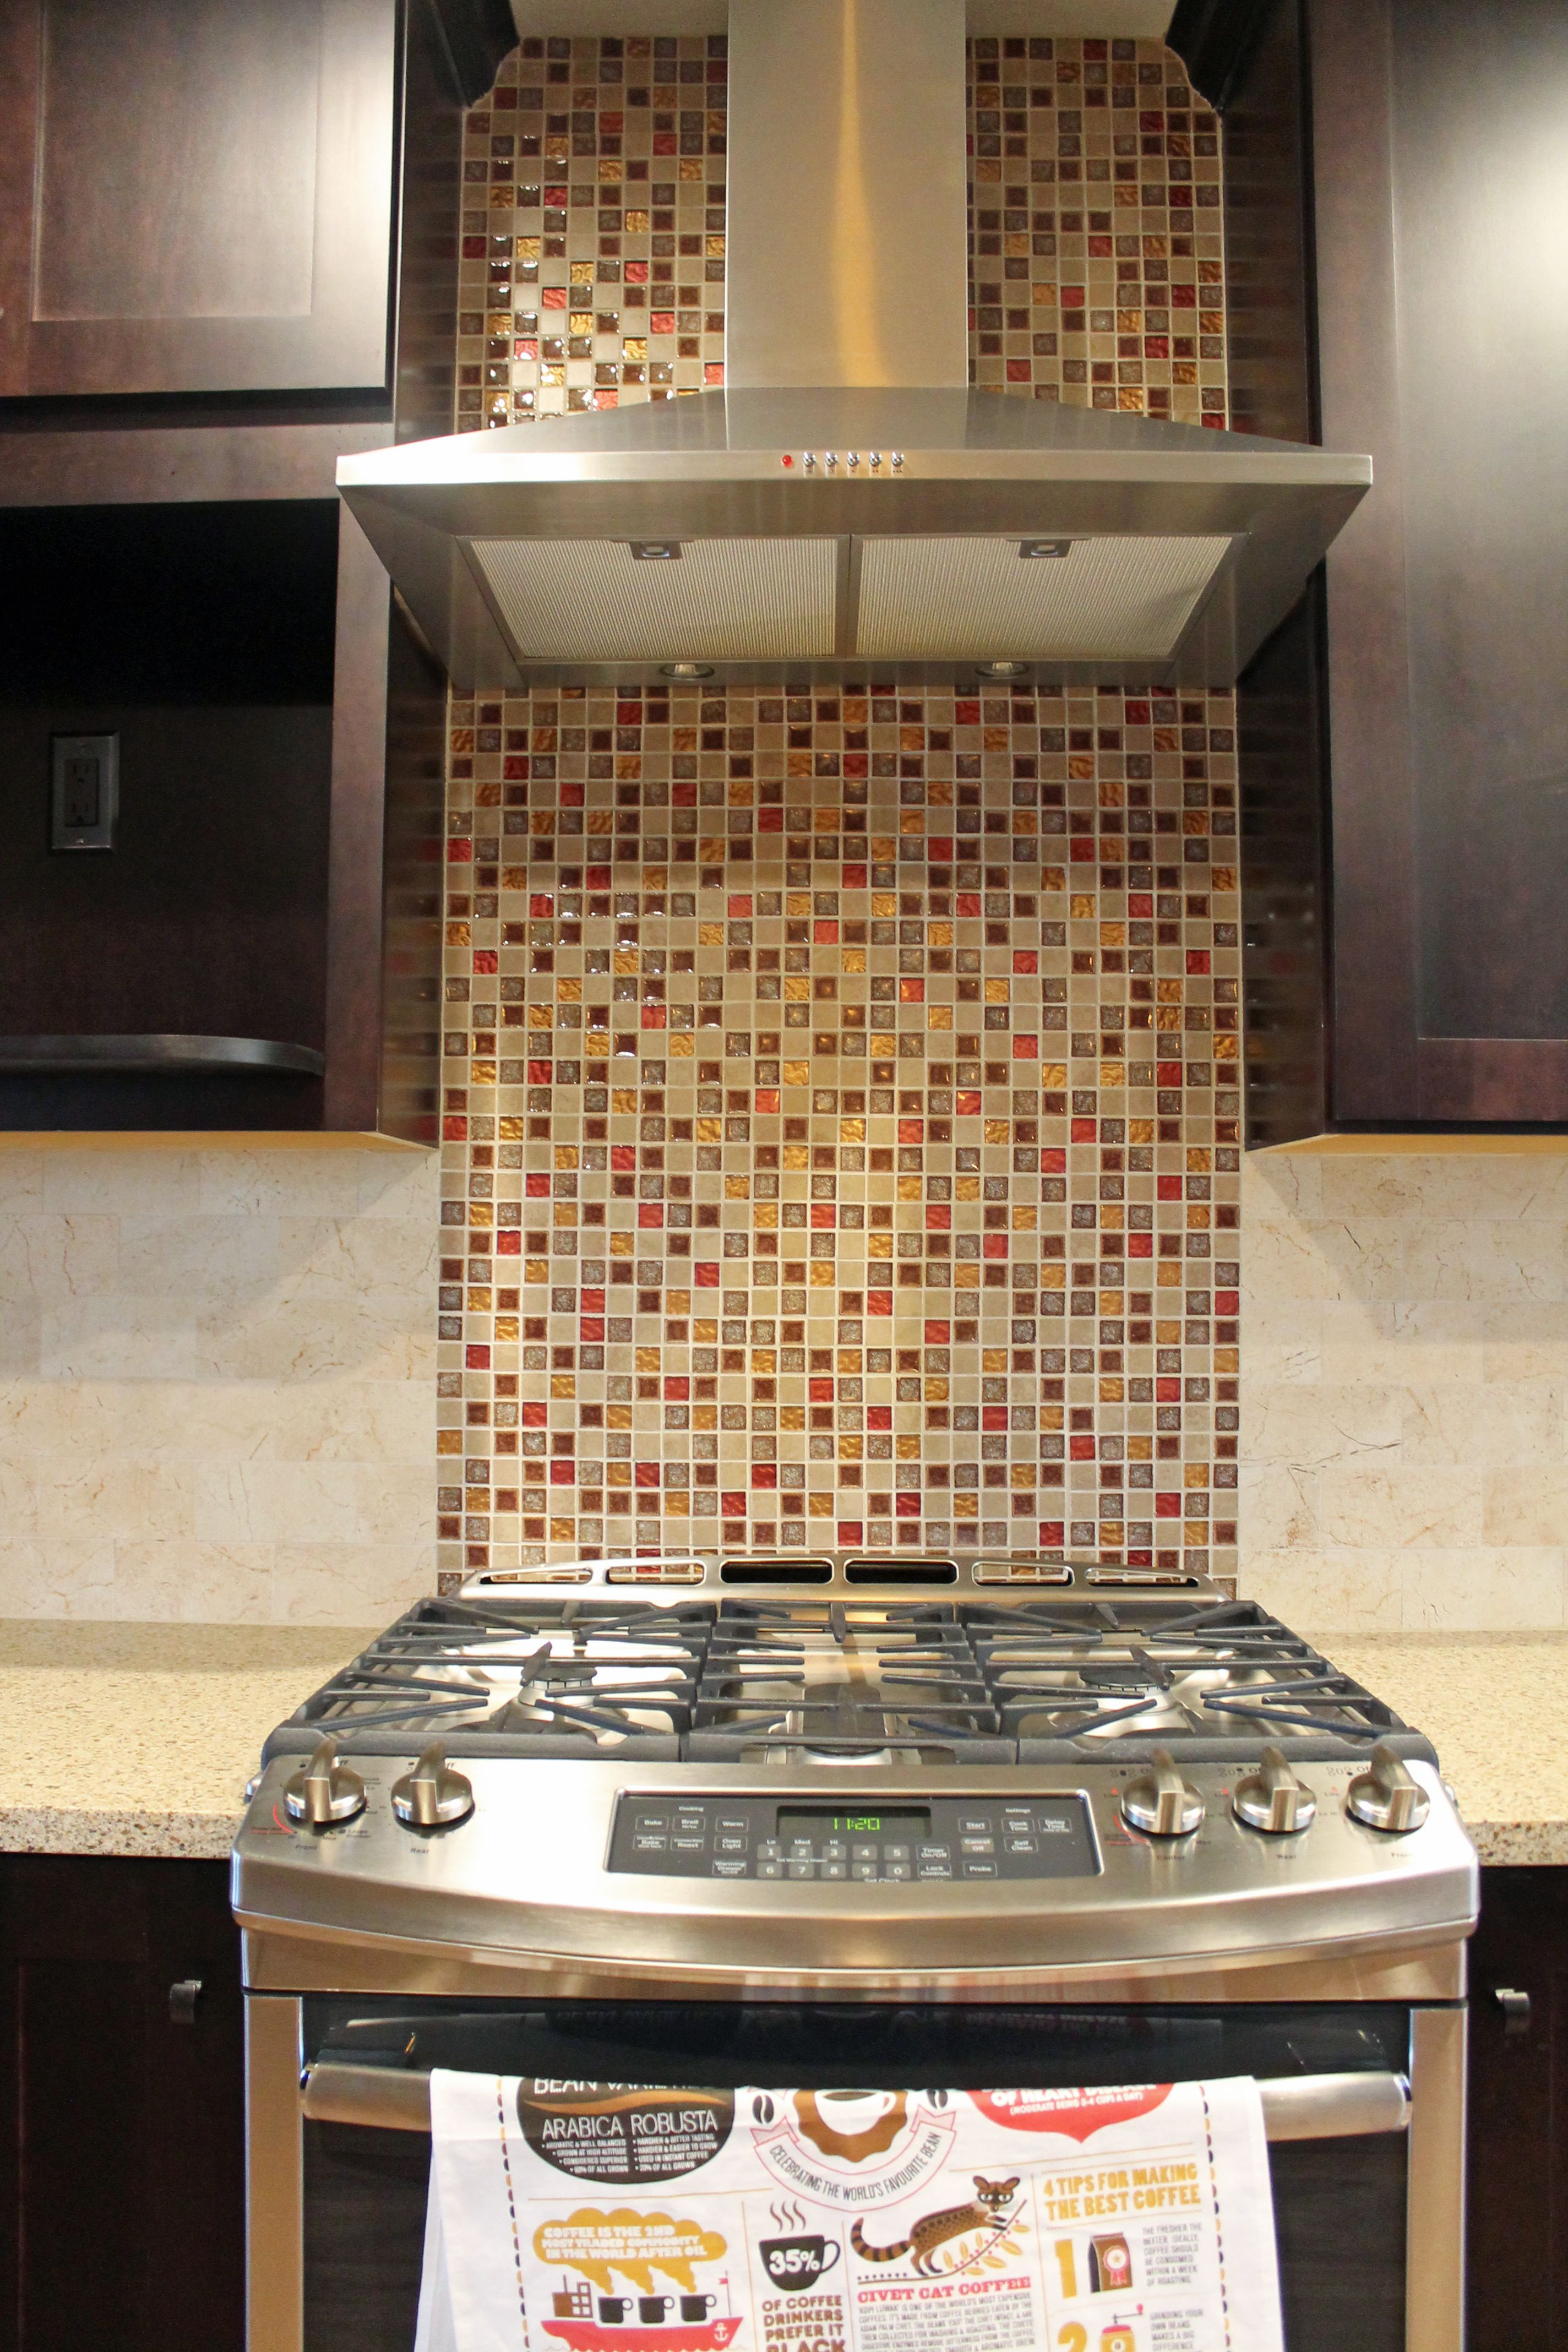 kitchen mosaic tile backsplash with stainless steel vent hood and rh pinterest com stove top tile backsplash backsplash ideas behind stove top